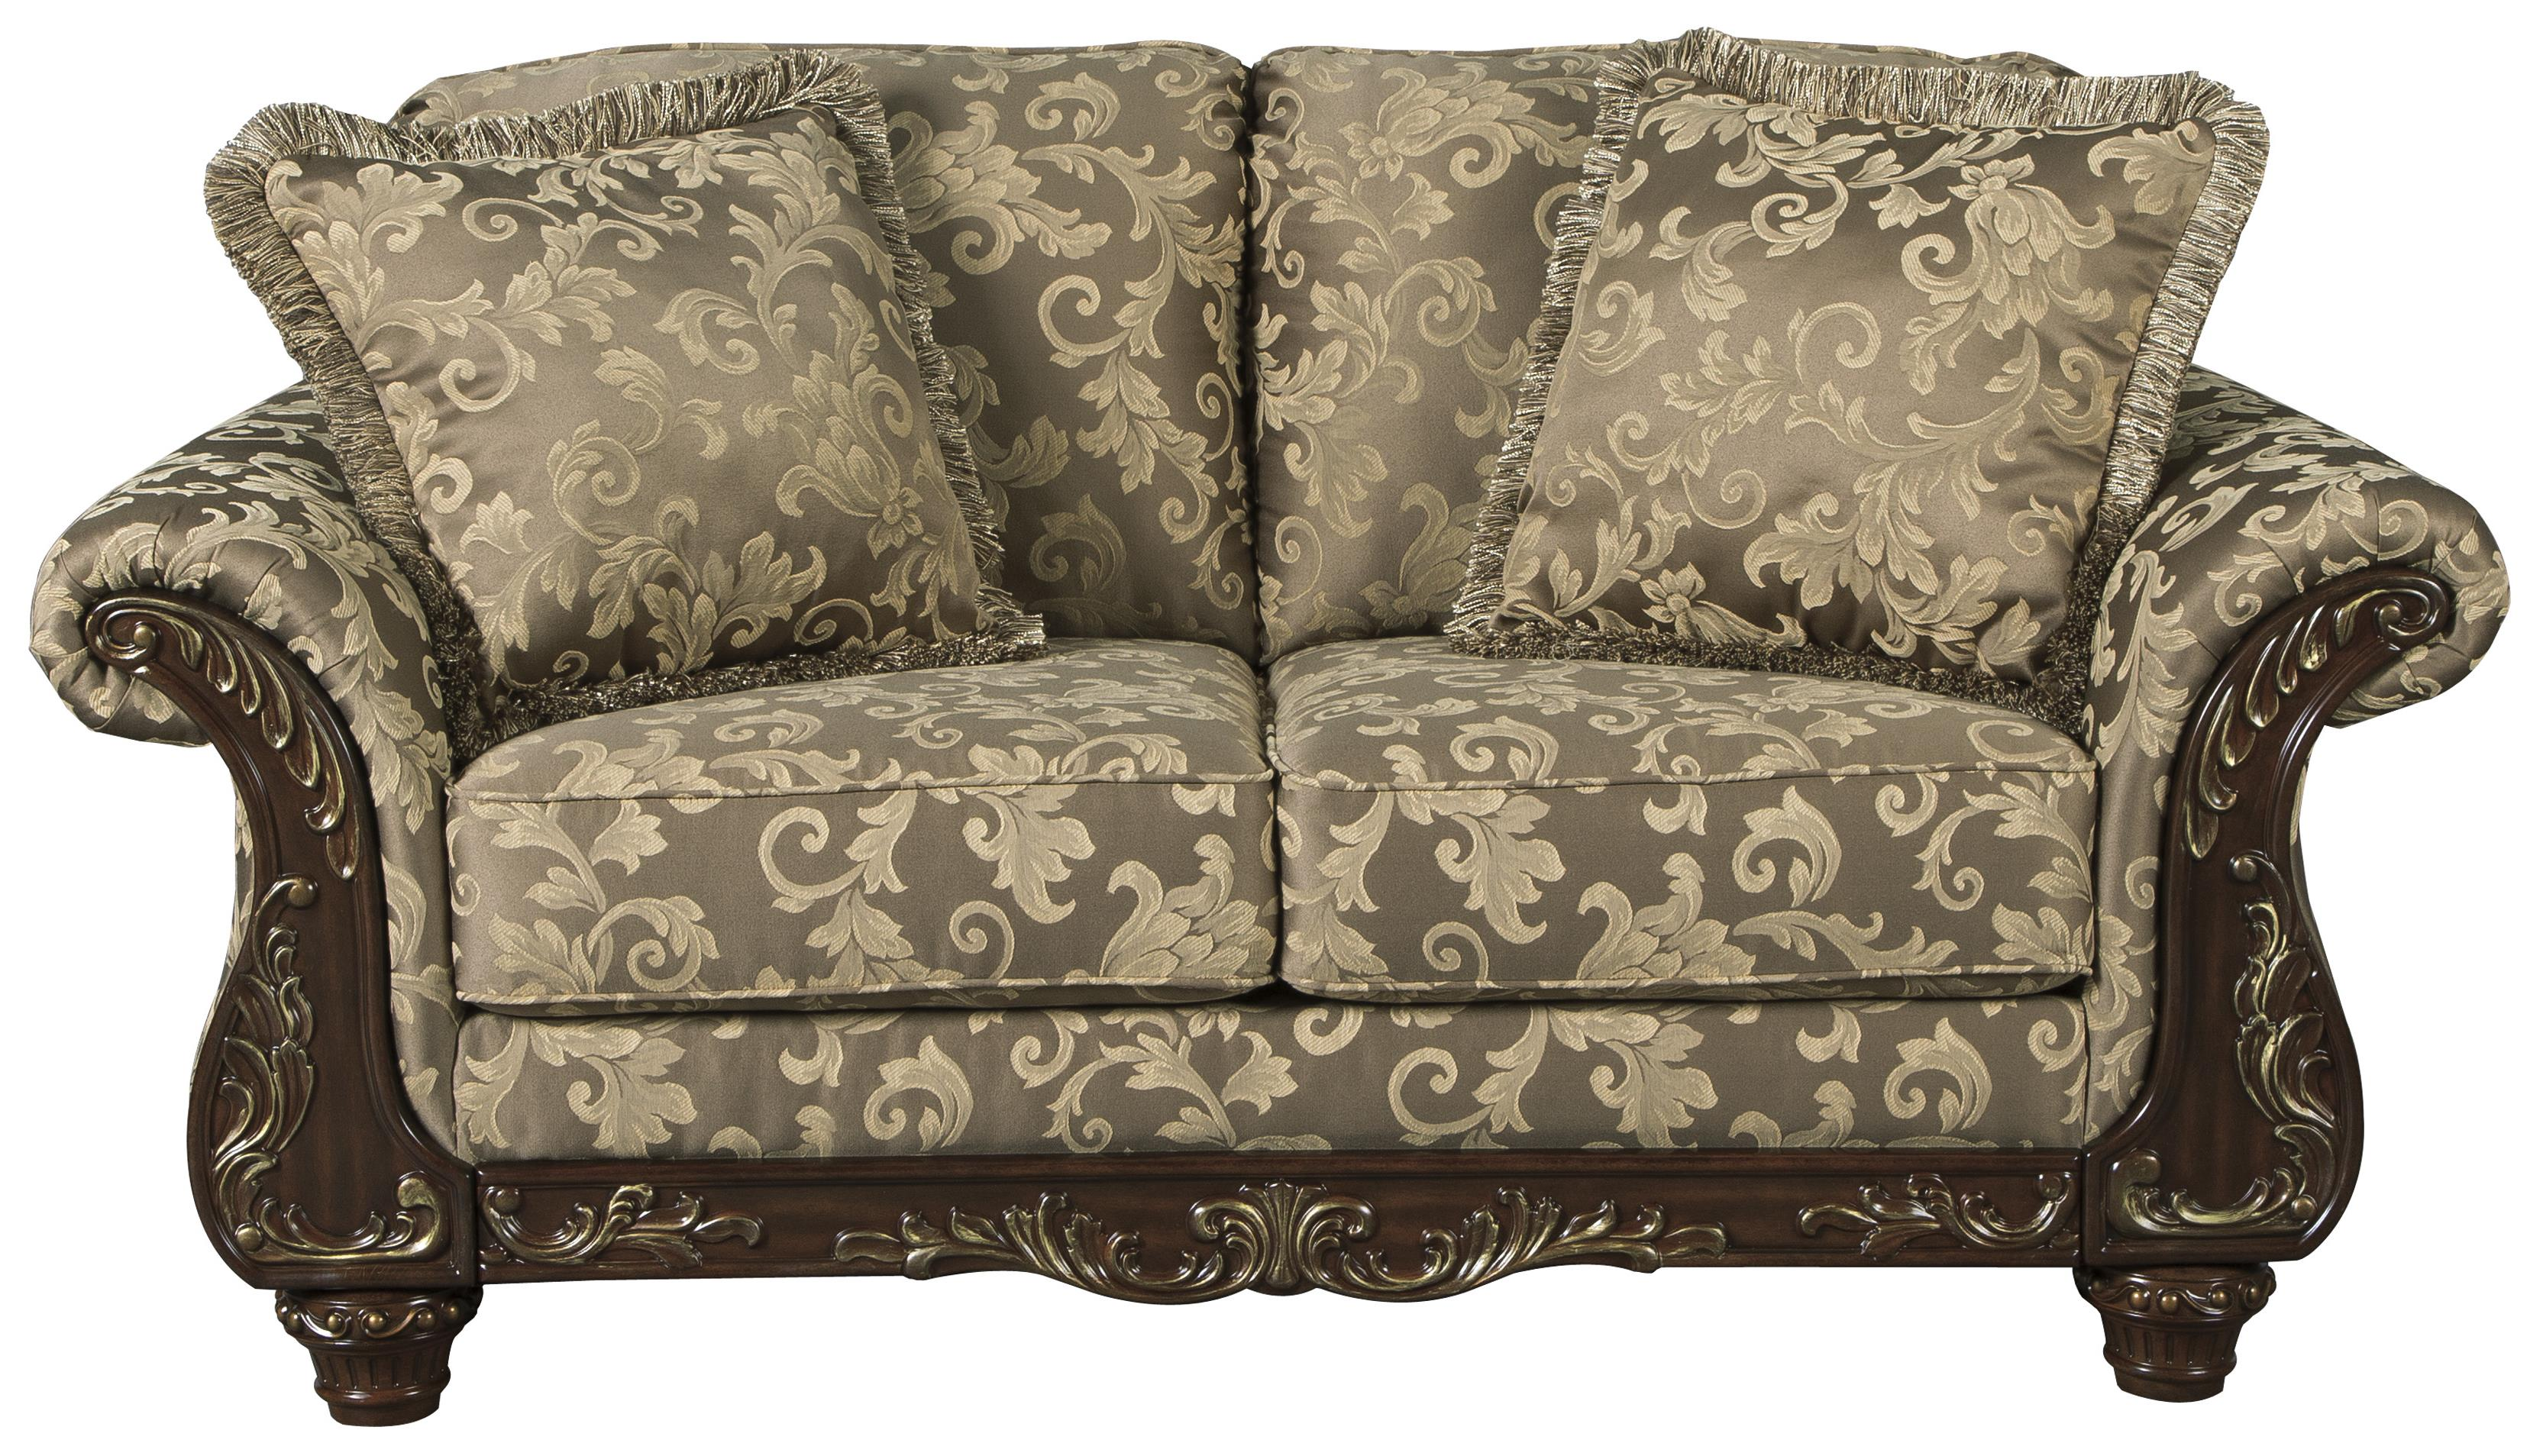 Signature Design by Ashley Irwindale Loveseat - Item Number: 8840435